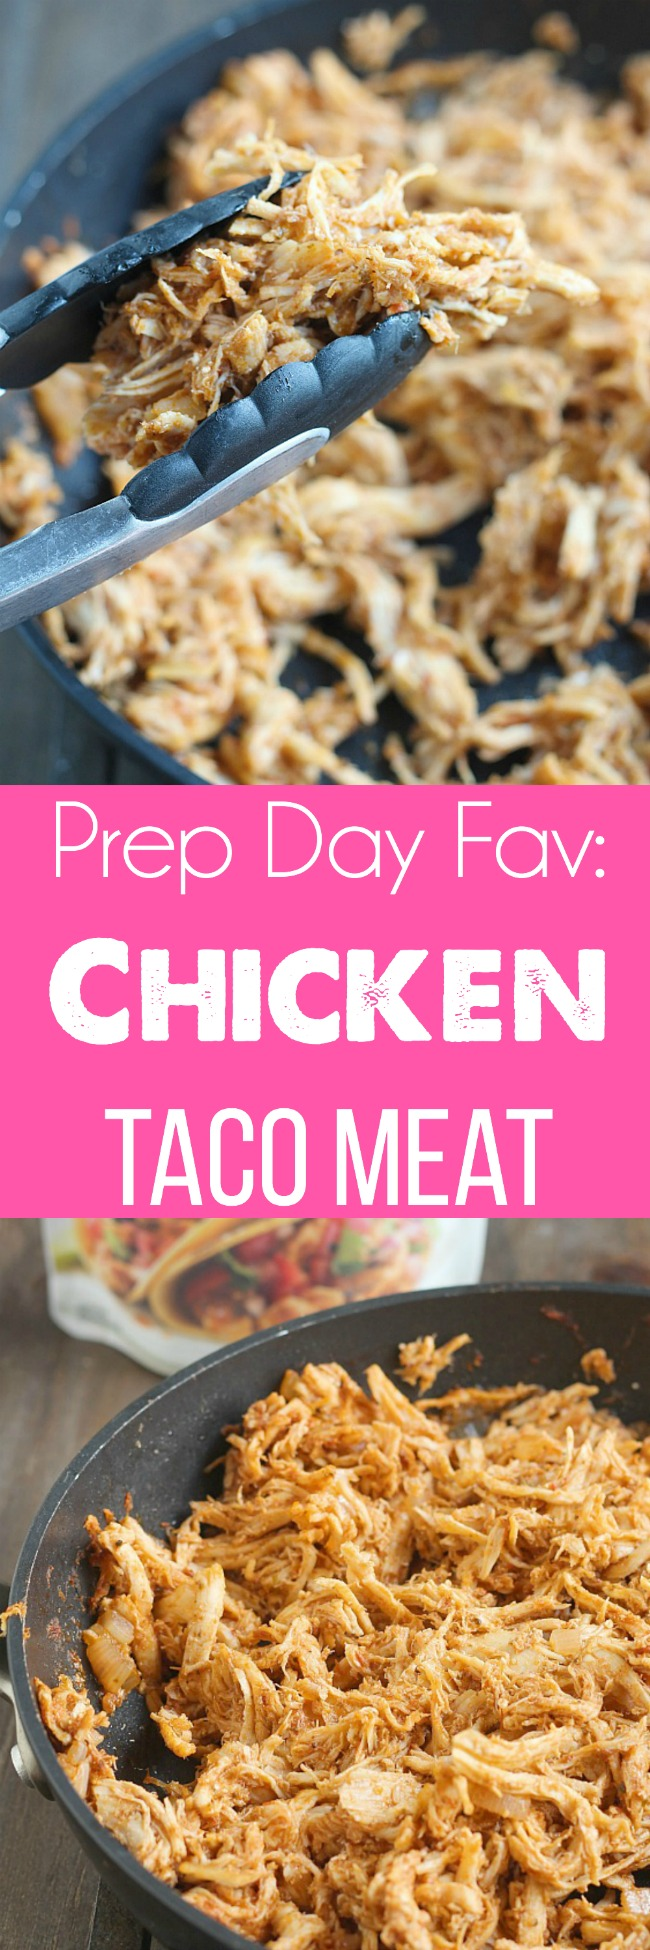 Easy prep day item: chicken taco meat! Perfect for salads, nachos and Taco Tuesday. Simply Organic Simmer sauce makes it easy. via @DashOfEvans #Ad #OrganicMoments